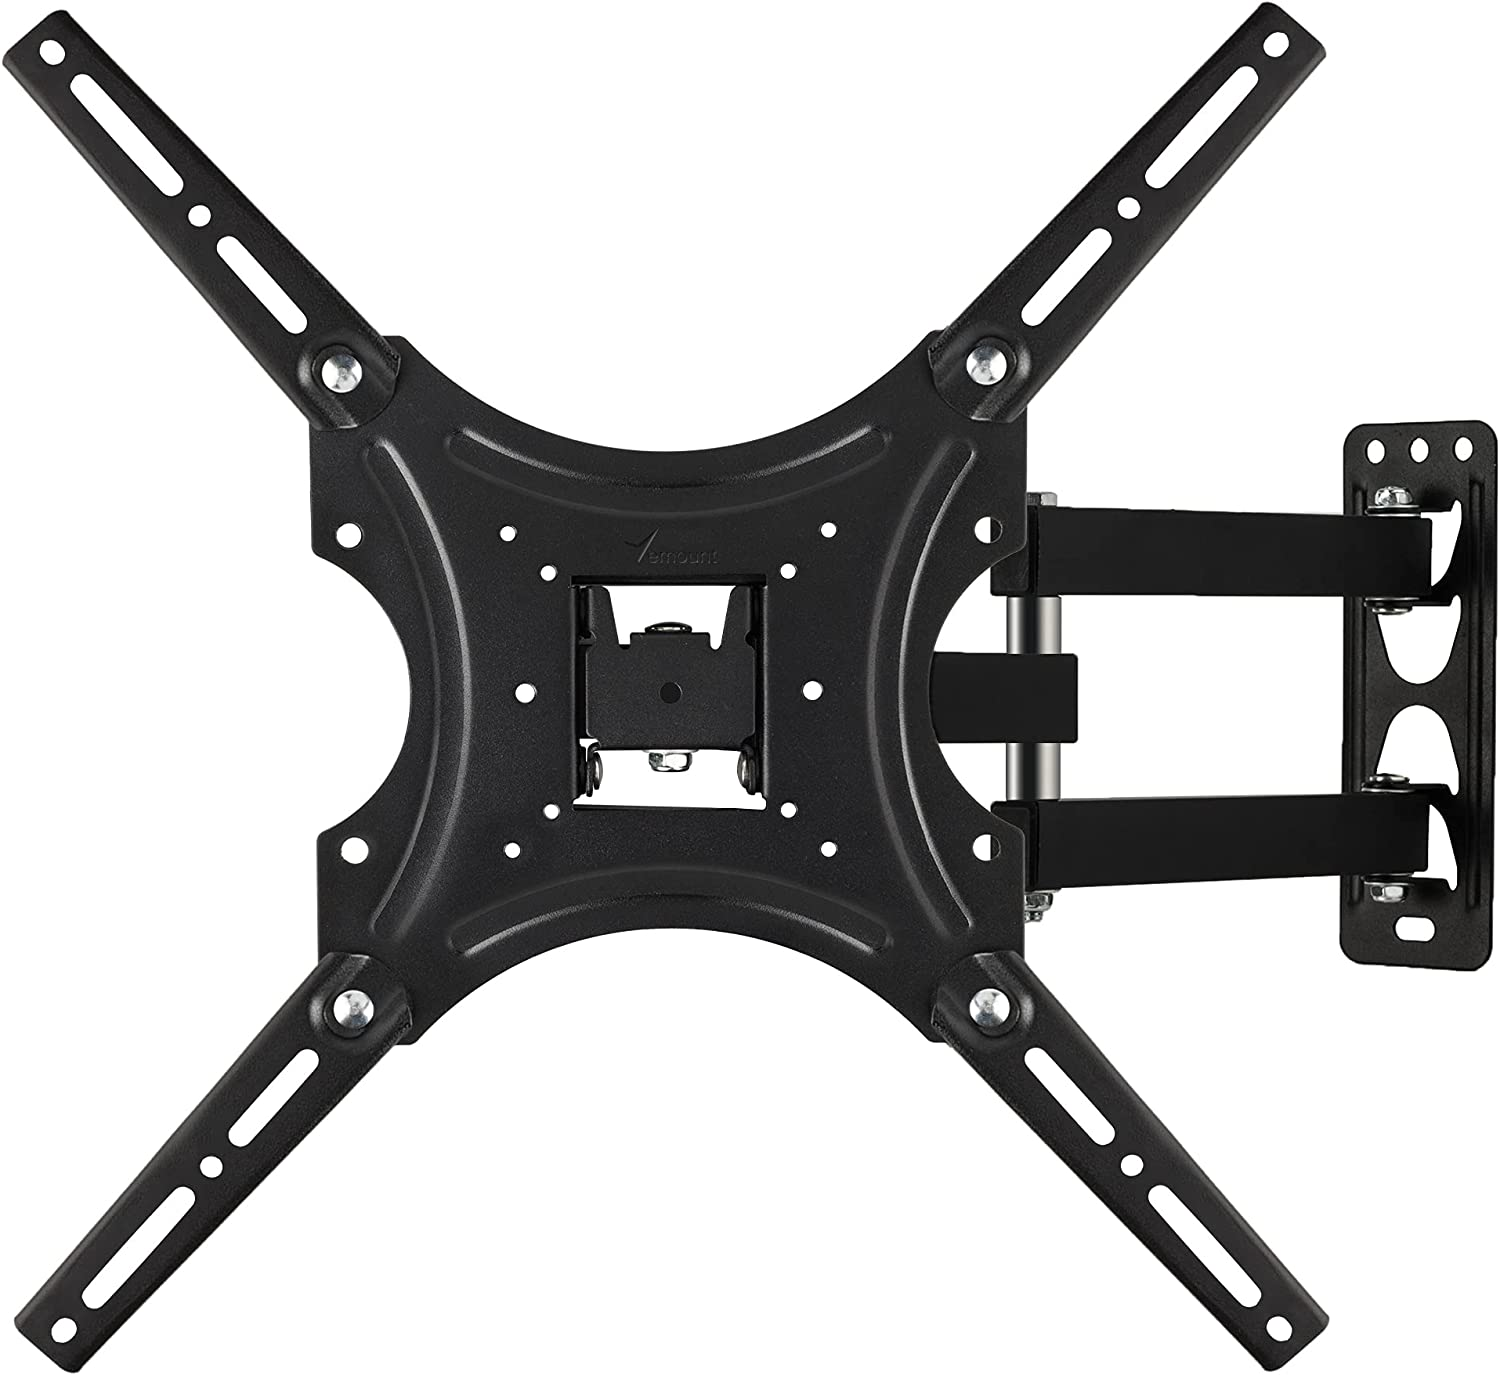 Vemount TV Wall Fort Worth Mall Mount Bracket Very popular Corner Articulating Mounts with